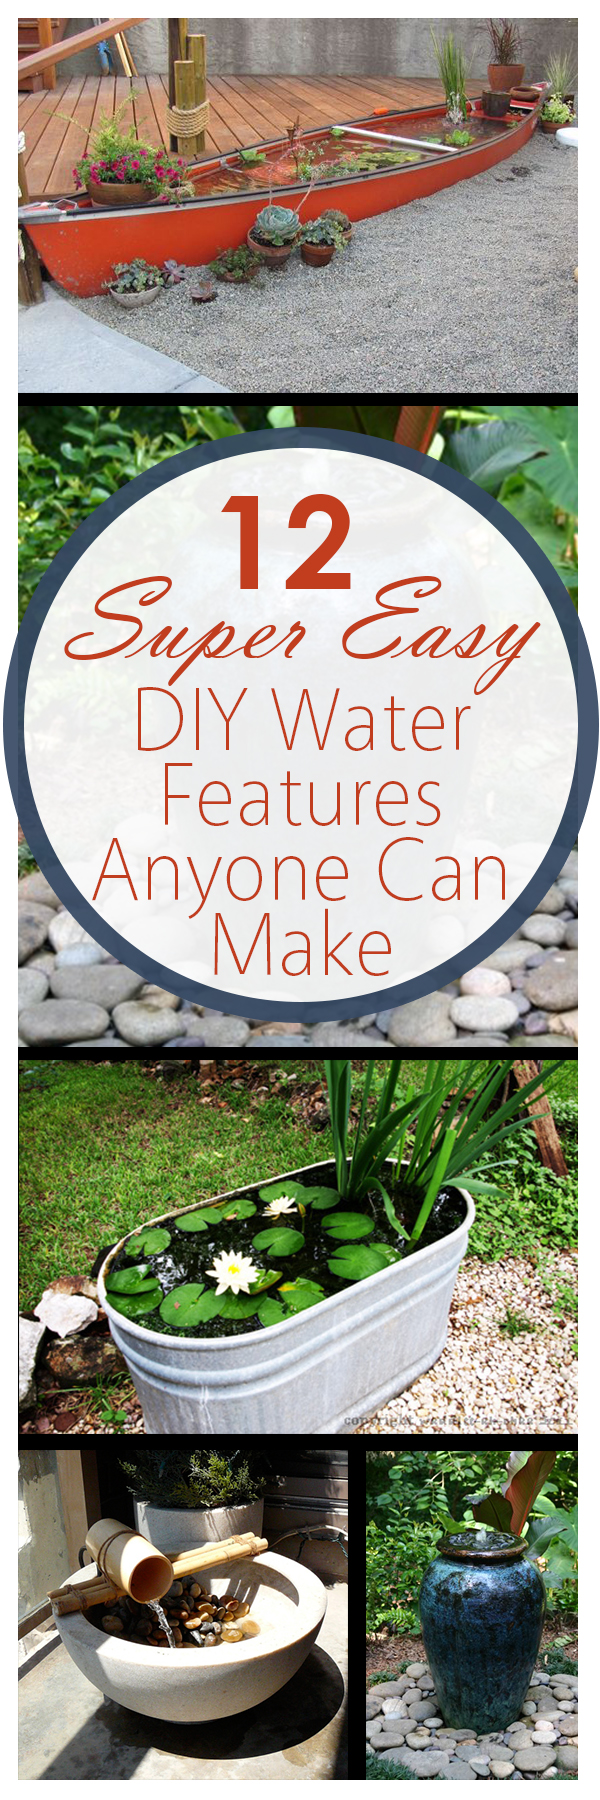 DIY water features, garden water features, landscaping ideas, DIY landscaping, landscape with water, gardening, popular pin, outdoor living